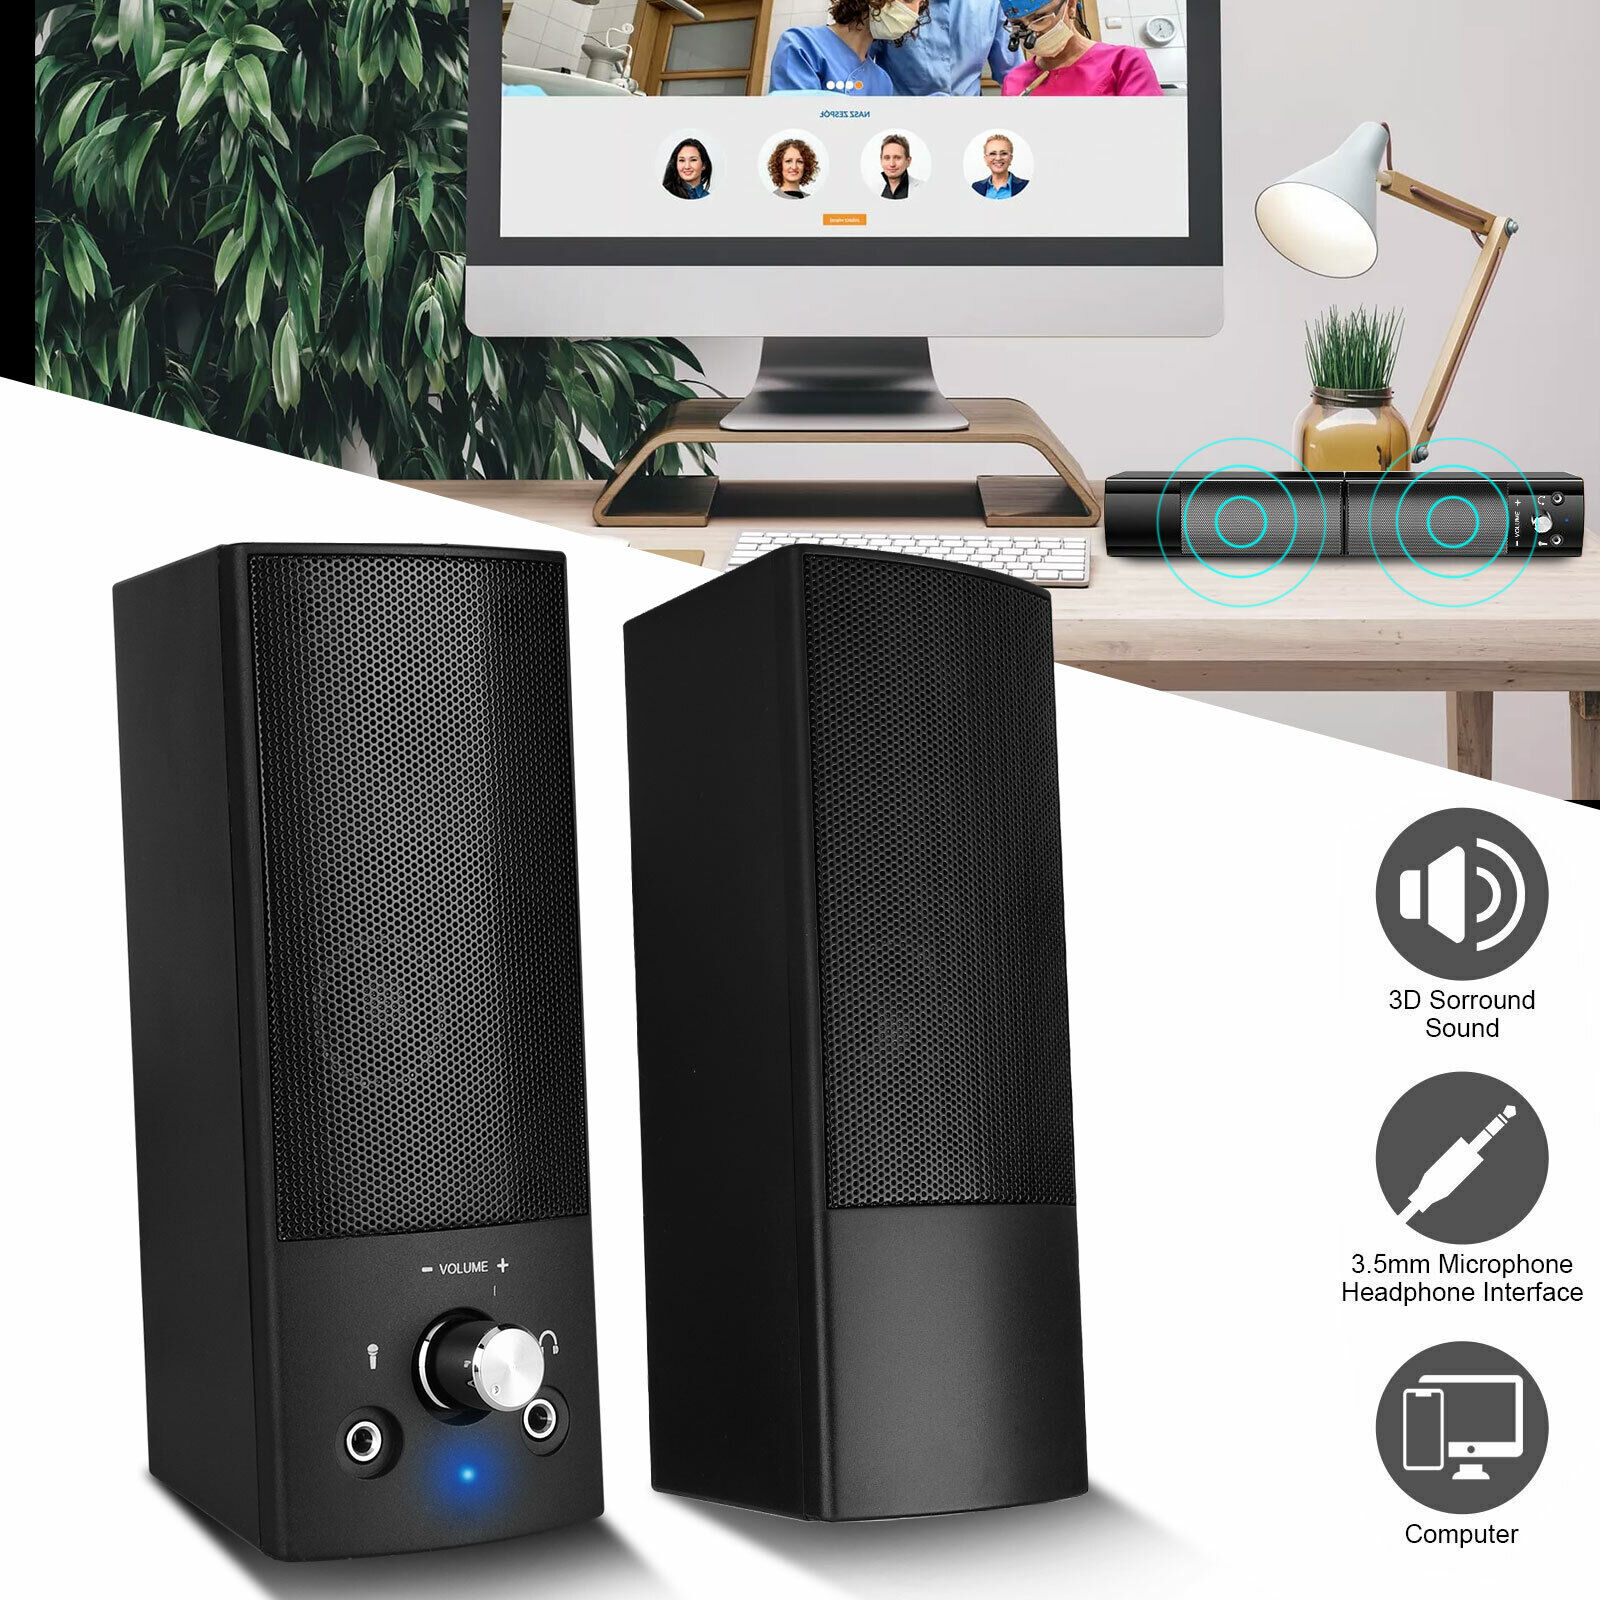 Stereo Bass Surround Sound USB Computer Speakers 2.0 Channel for Laptop Desktop. Buy it now for 29.48